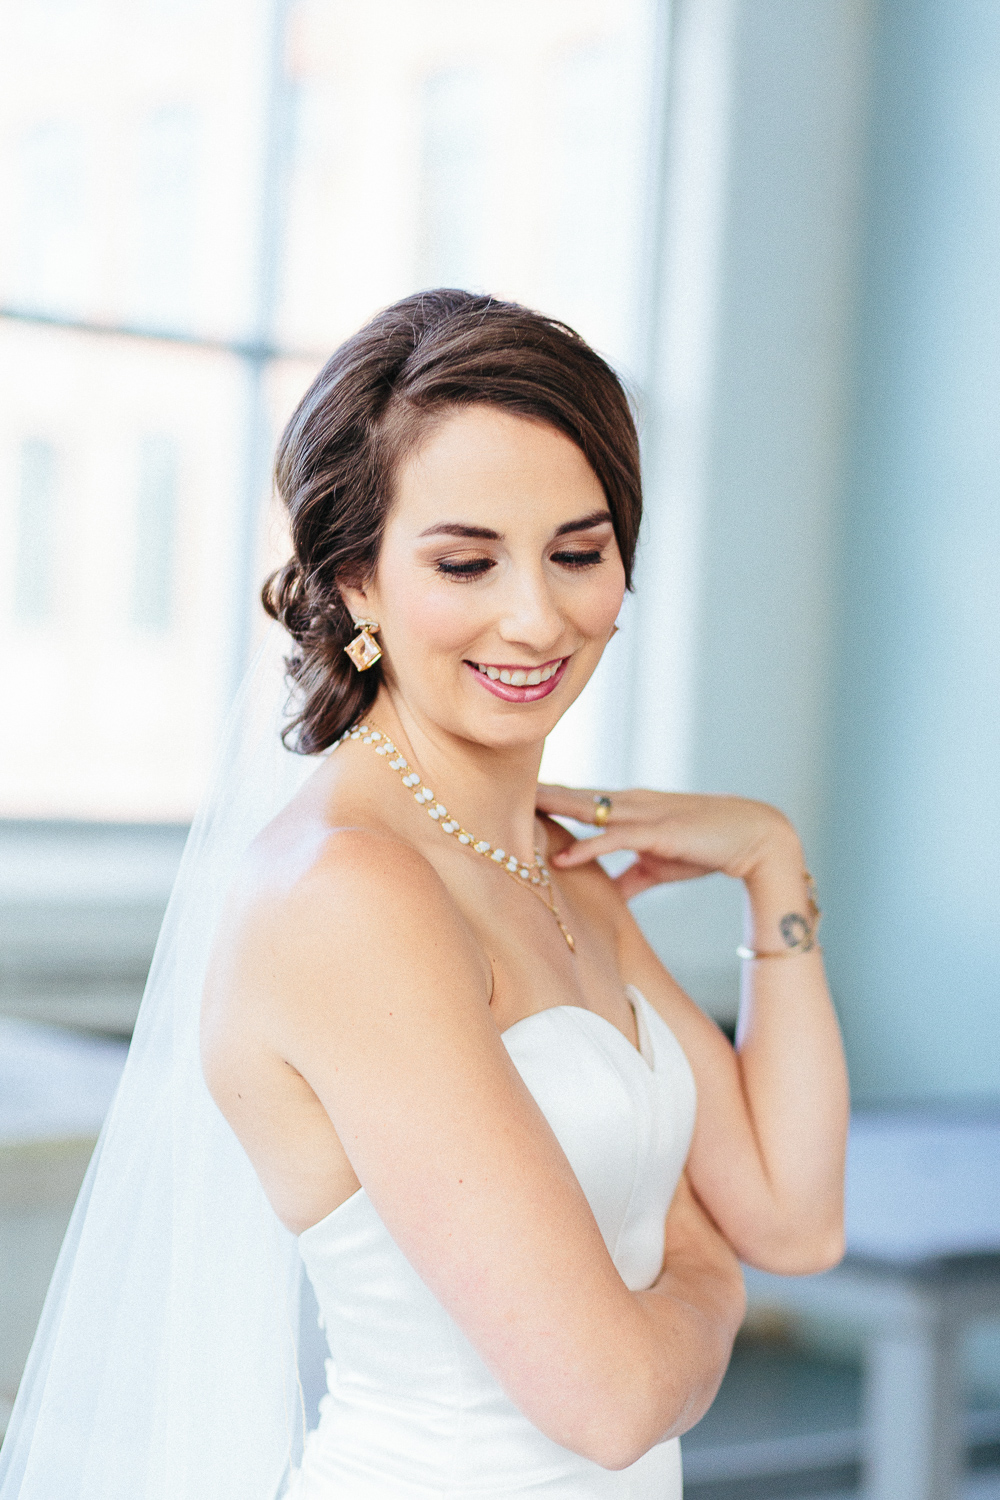 Greenville-Wedding-Photographer-Bridal-Portraits-11.jpg